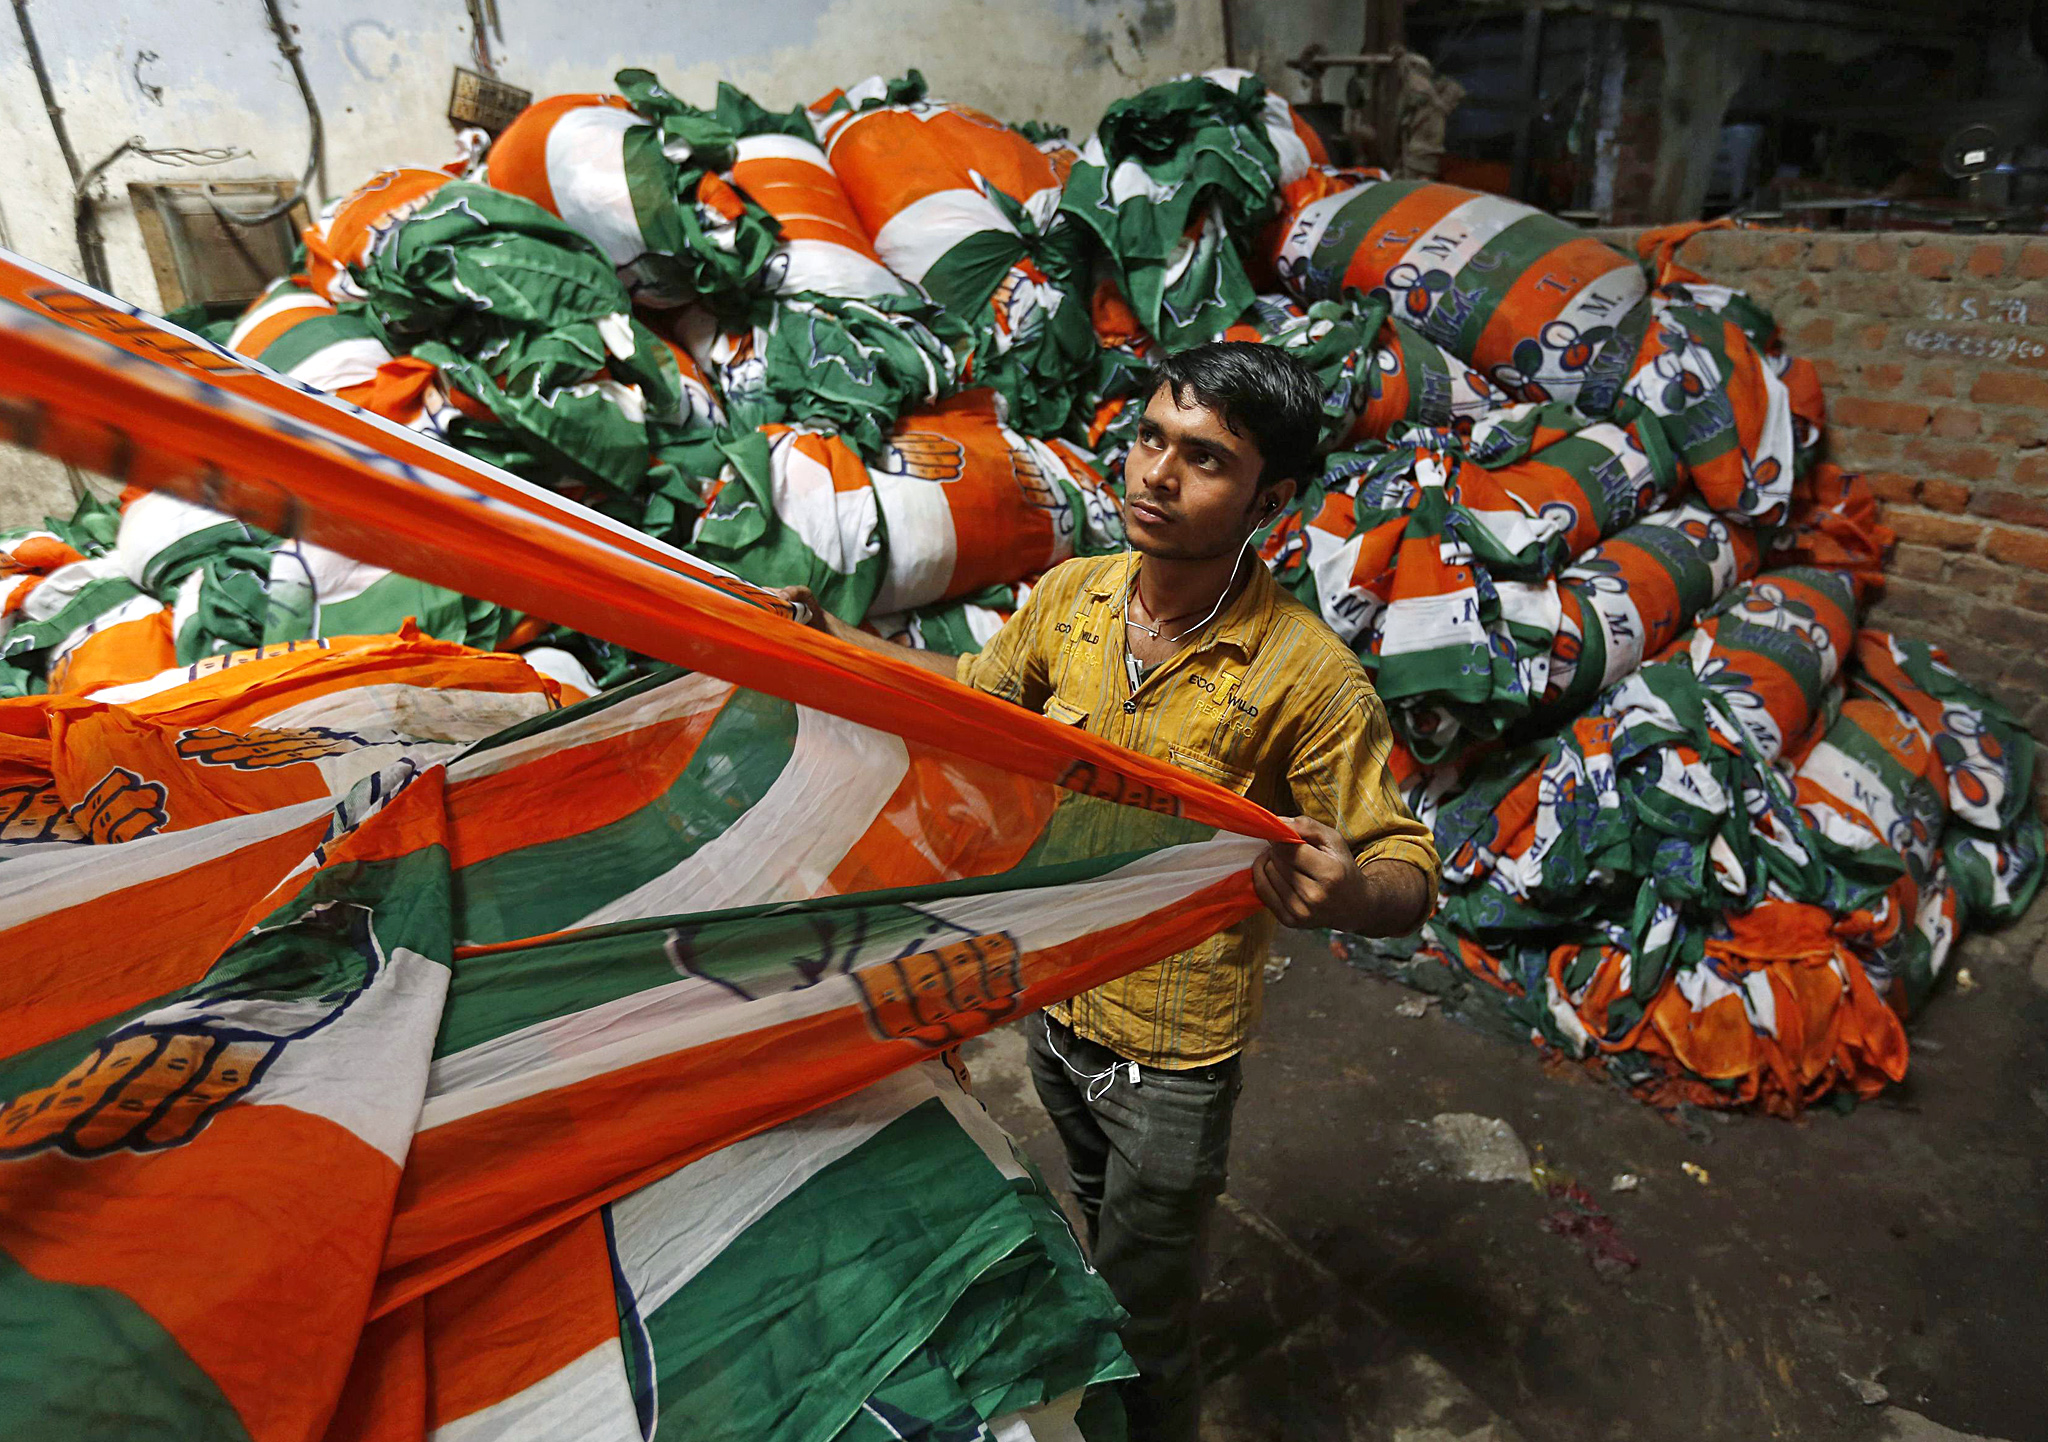 A worker holds a roll of flags of India's ruling Congress party after dying in the colours at a flag manufacturing factory ahead of the 2014 general elections in Ahmedabad...A worker holds a roll of flags of India's ruling Congress party after dying in the colours at a flag manufacturing factory ahead of the 2014 general elections in the western Indian city of Ahmedabad March 25, 2014. India will hold a general election in April and May. REUTERS/Amit Dave